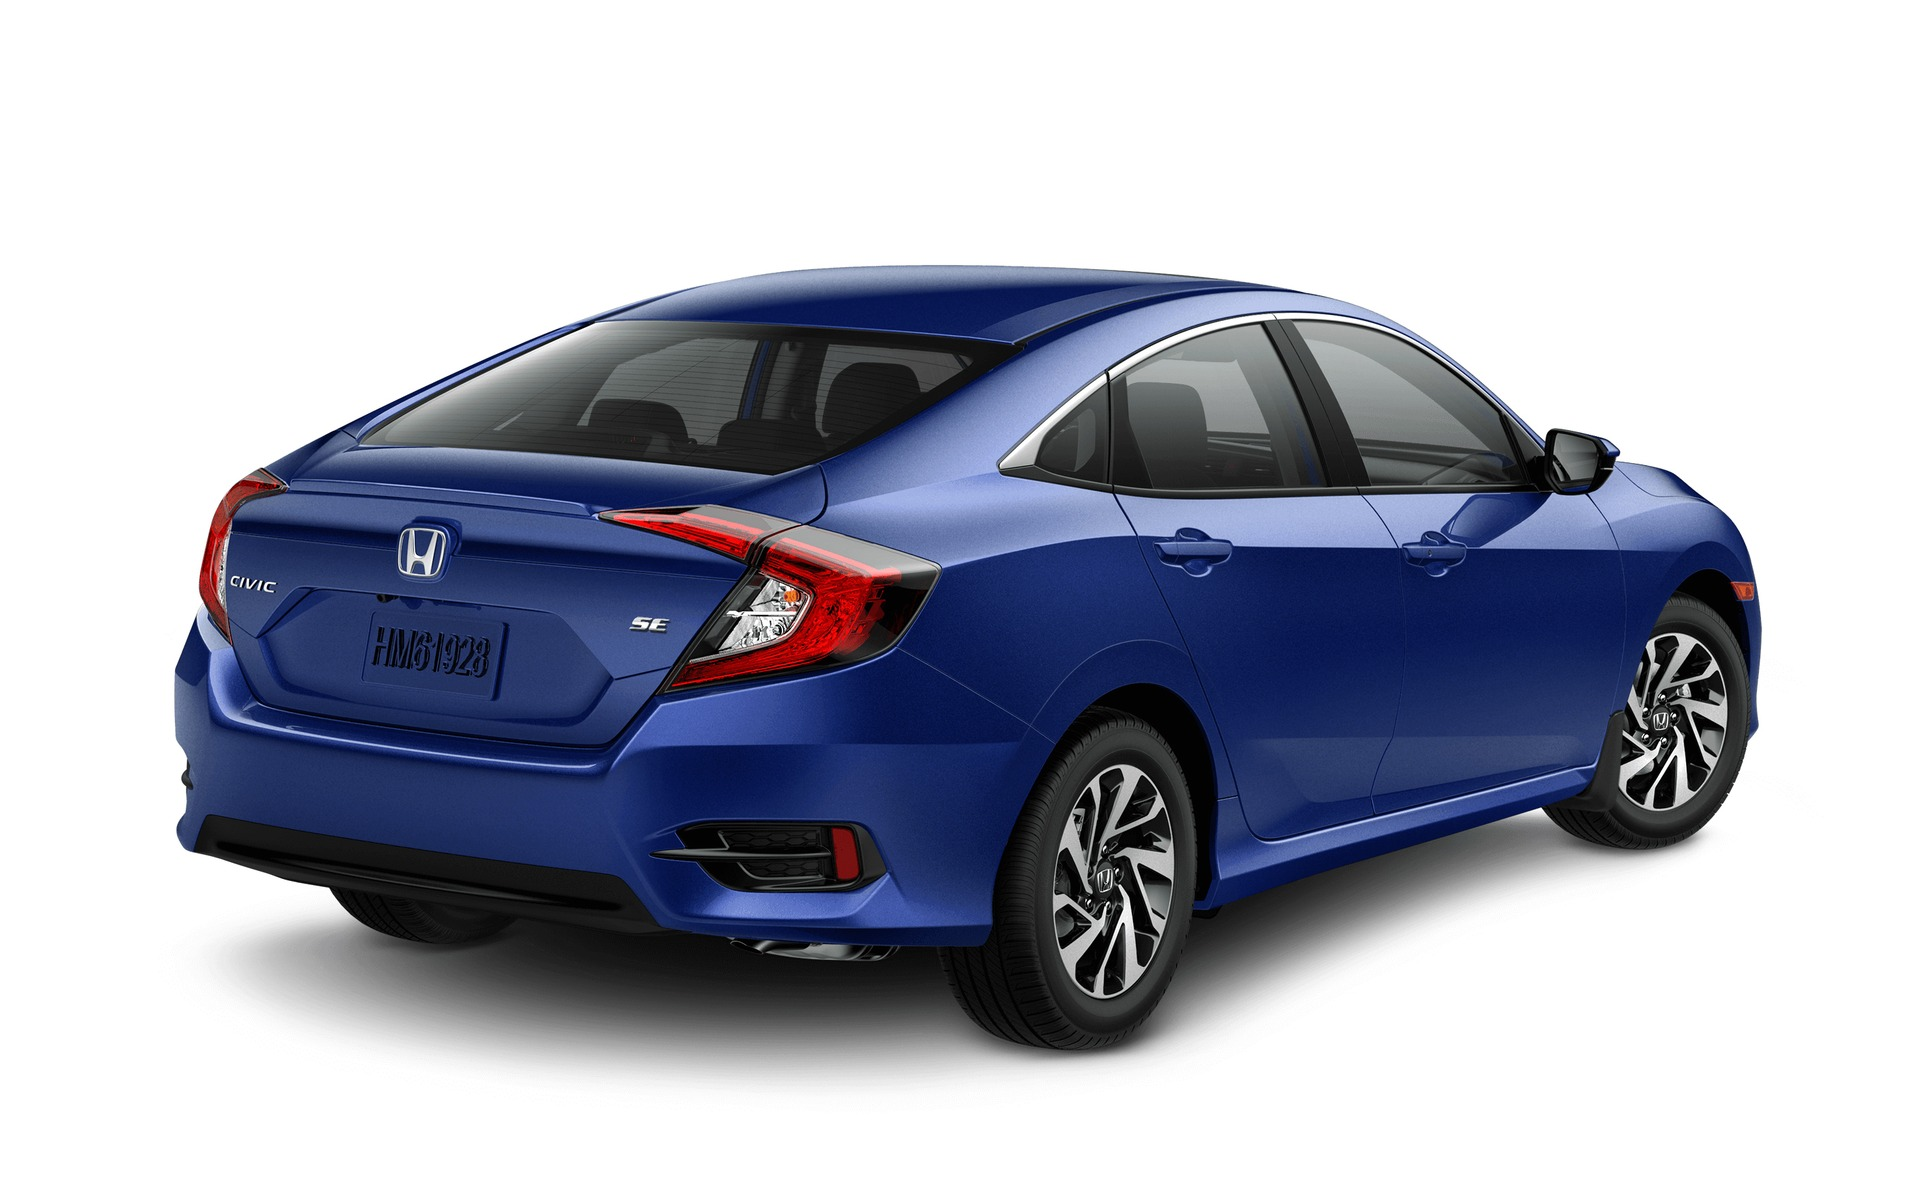 2018 Honda Civic Se Celebrating 20 Years Of Success The